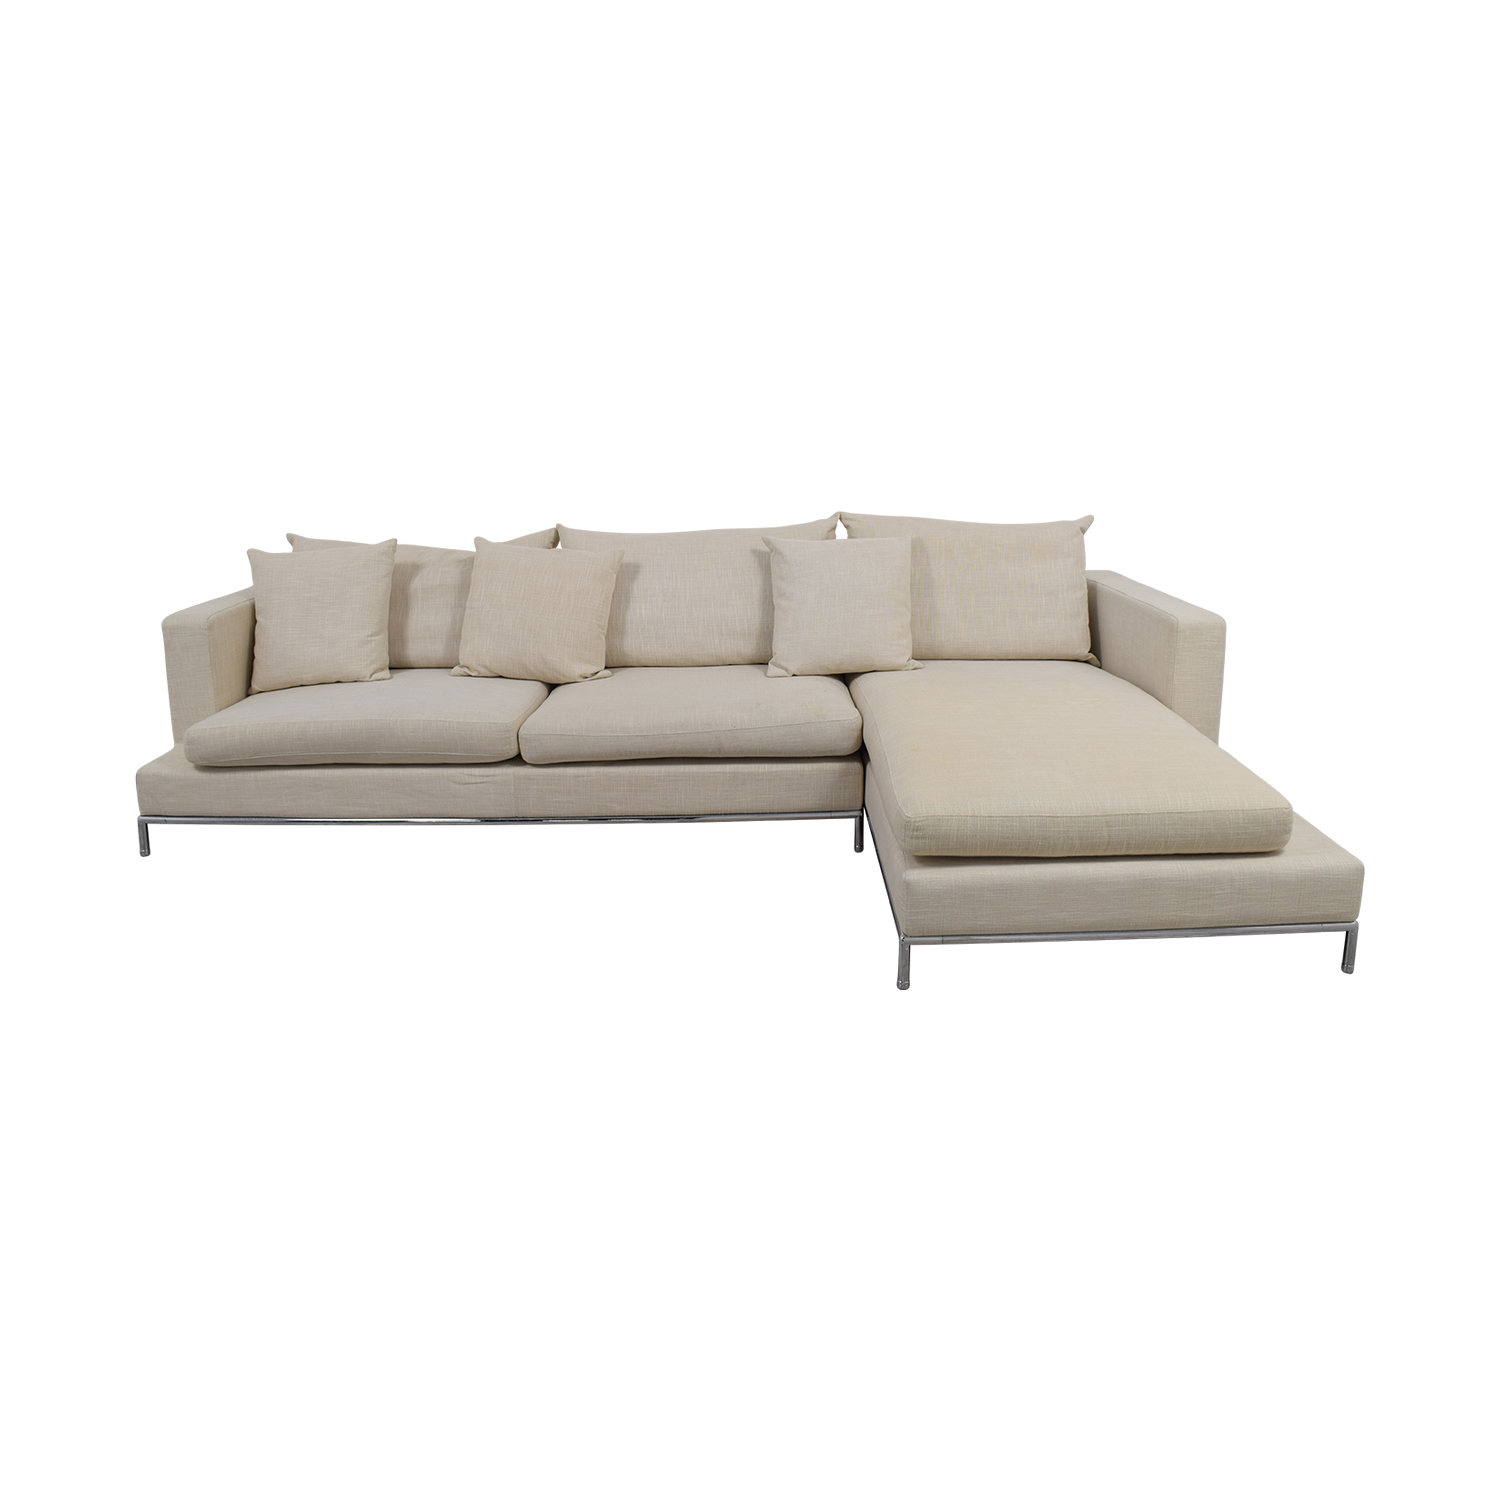 SohoConcept SohoConcept Simena Beige Chaise Sectional Sectionals